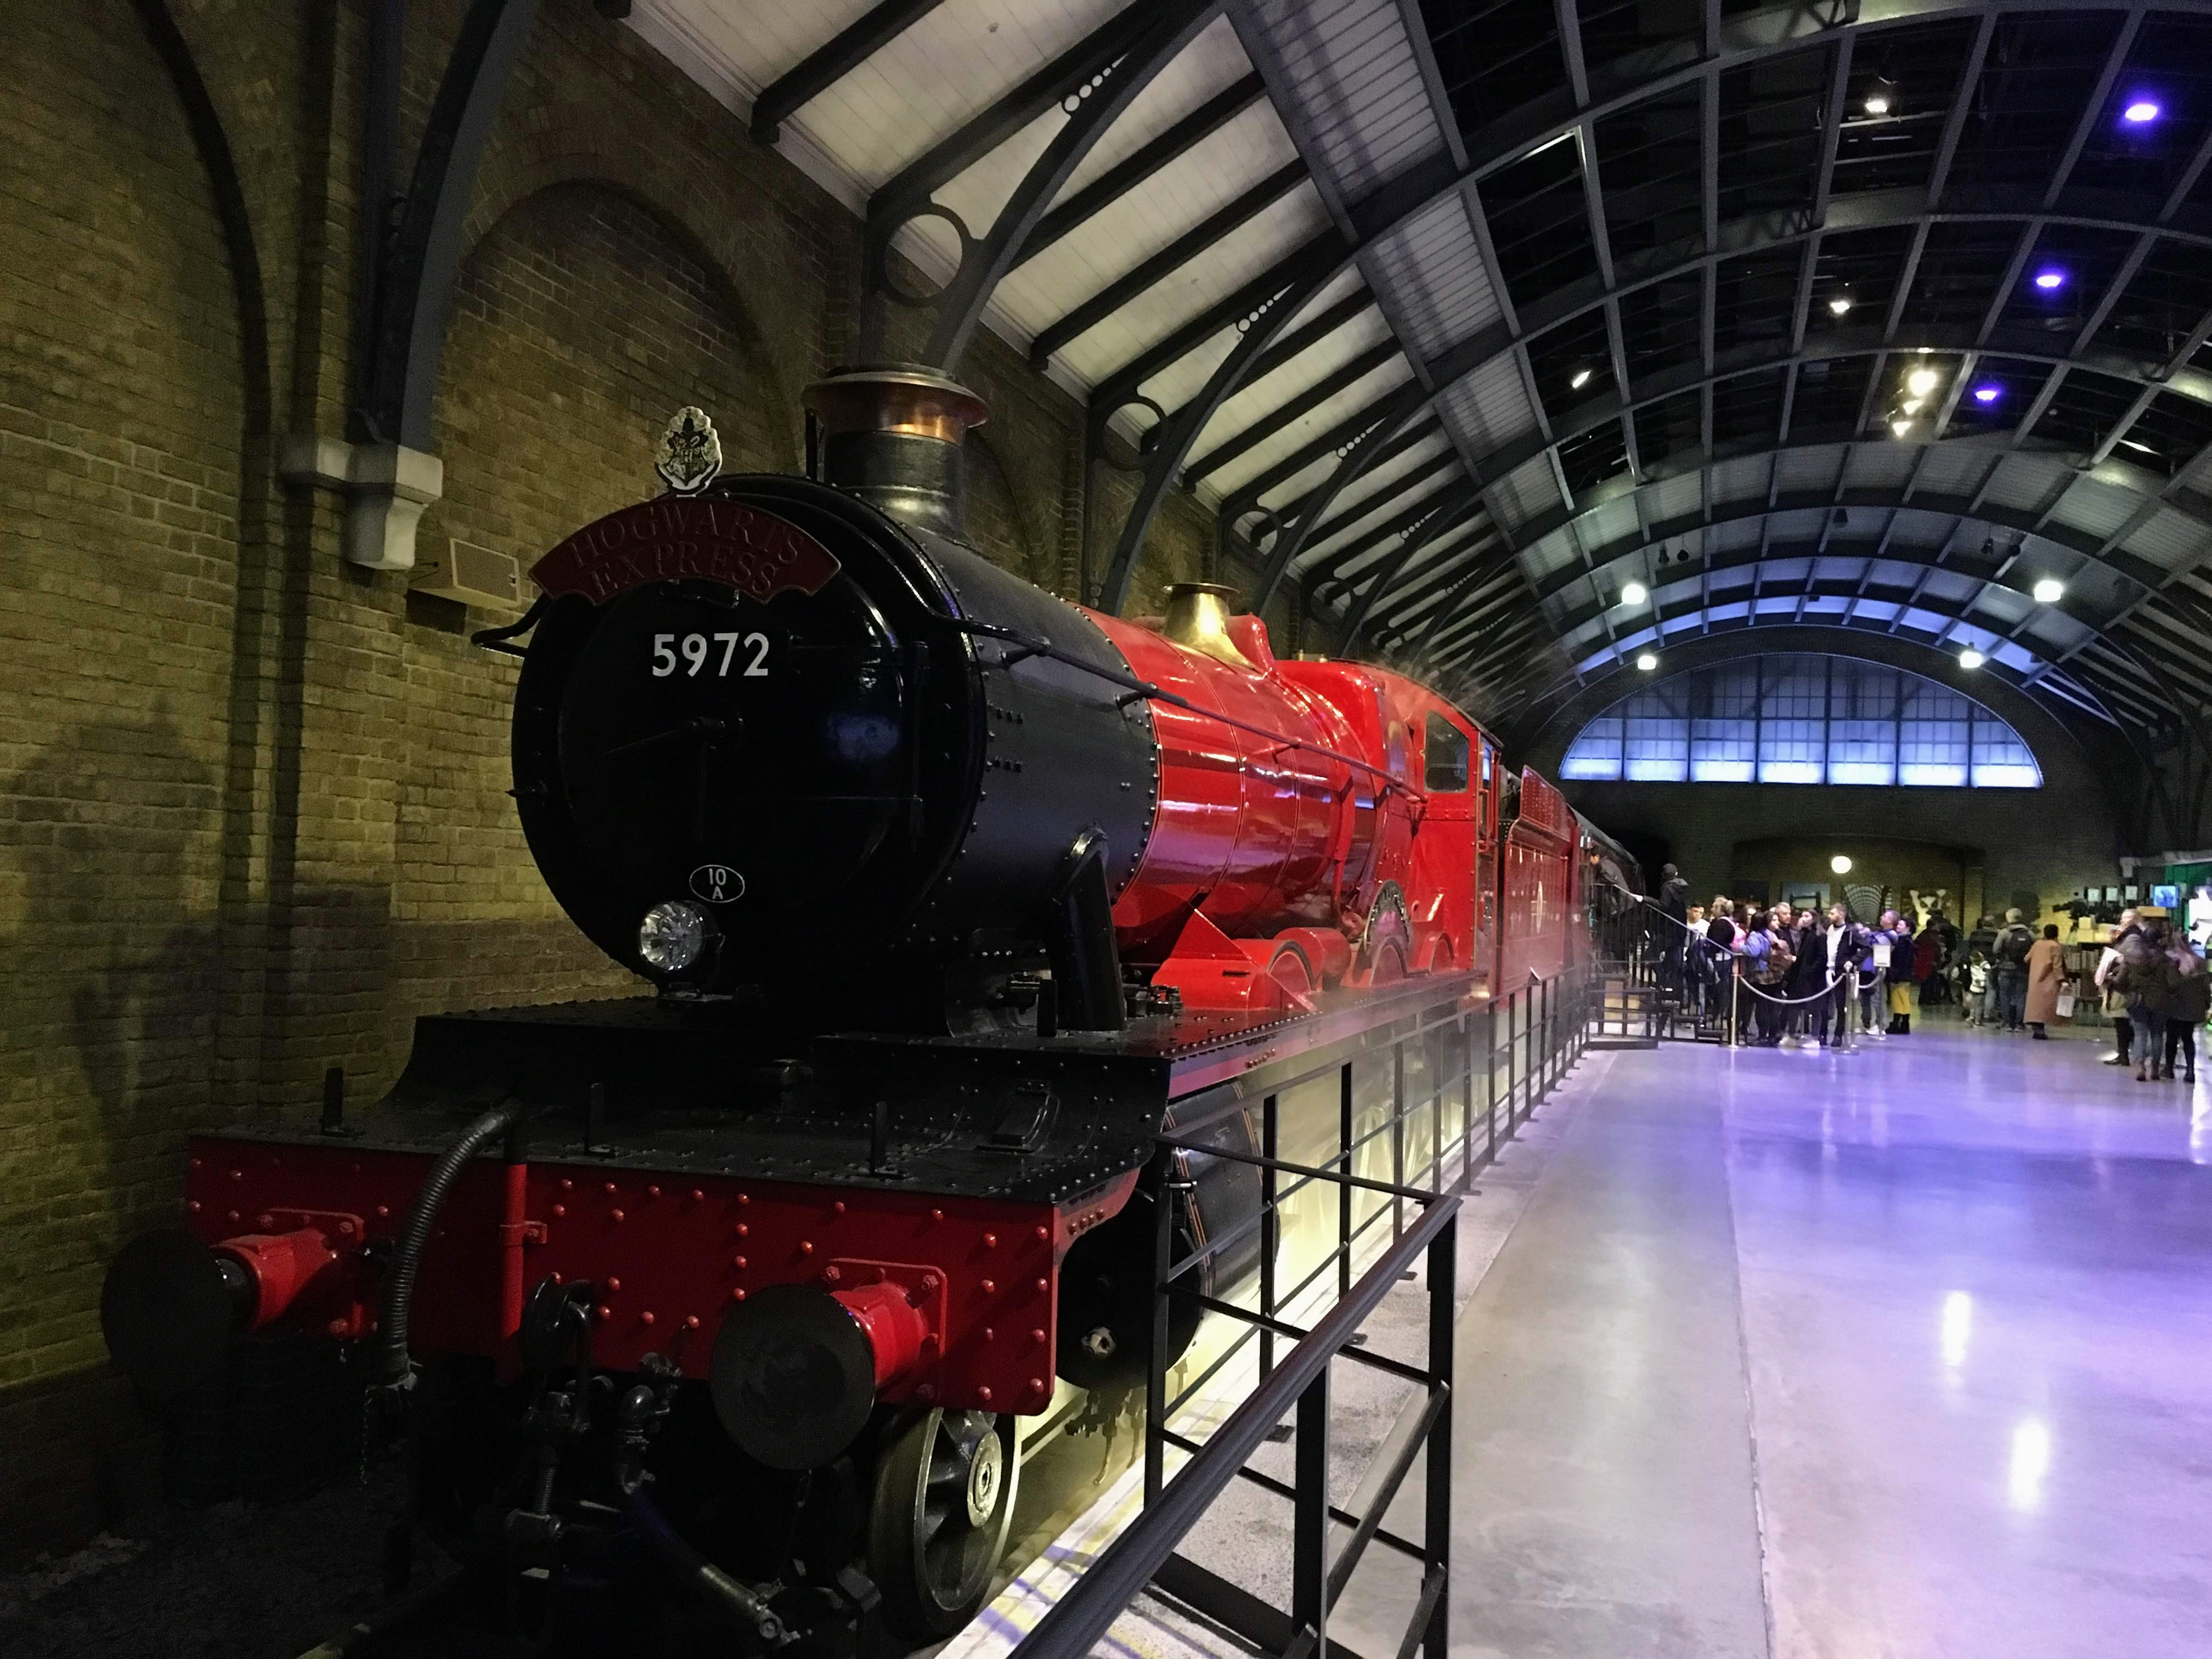 People waiting in line to enter the Hogwarts Express movie prop inside the Harry Potter Studios London Warner Bros